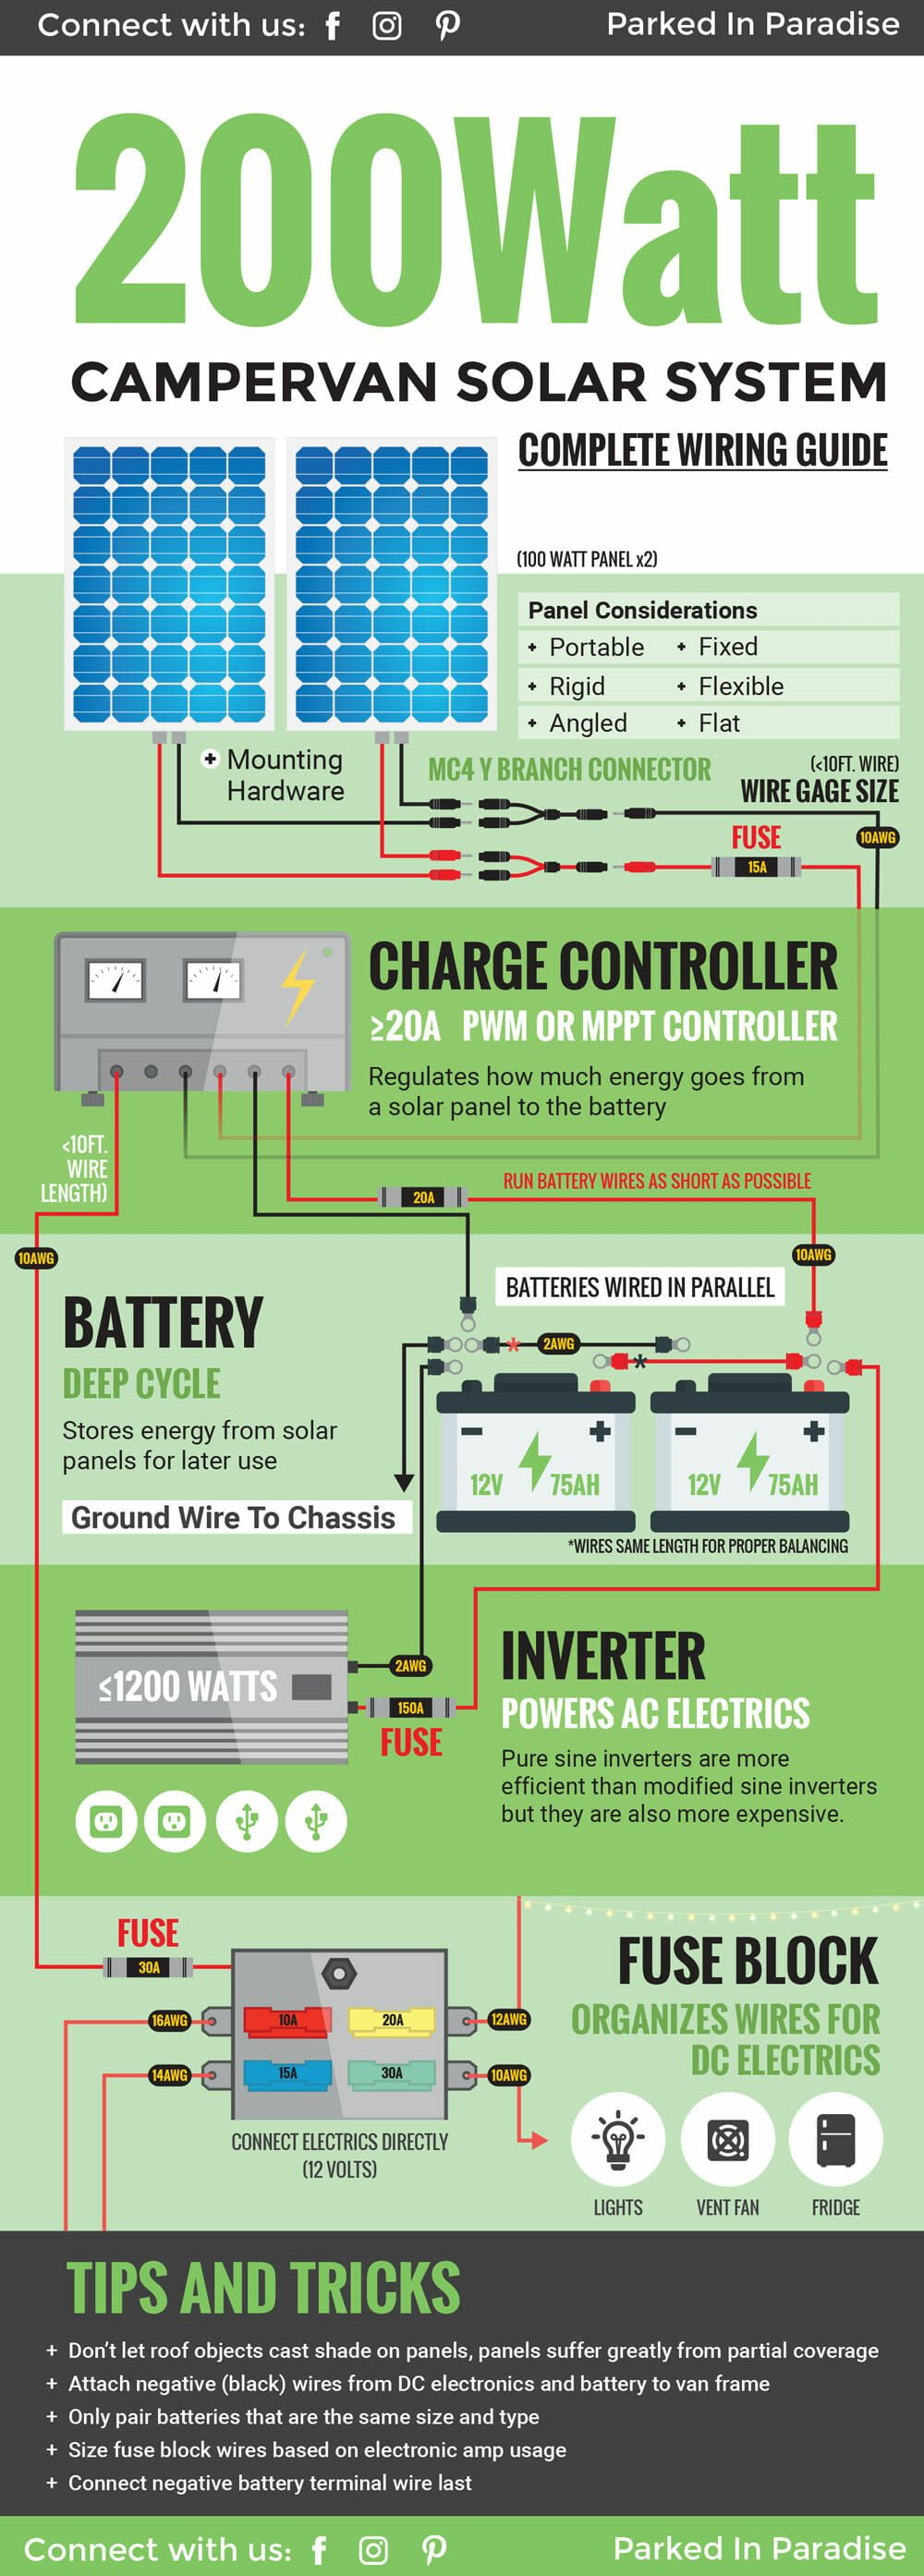 this solar panel graphic is so detailed and perfect for my next van build now i ll know exactly how to wire up the solar panel system for my camper van  [ 1000 x 2788 Pixel ]